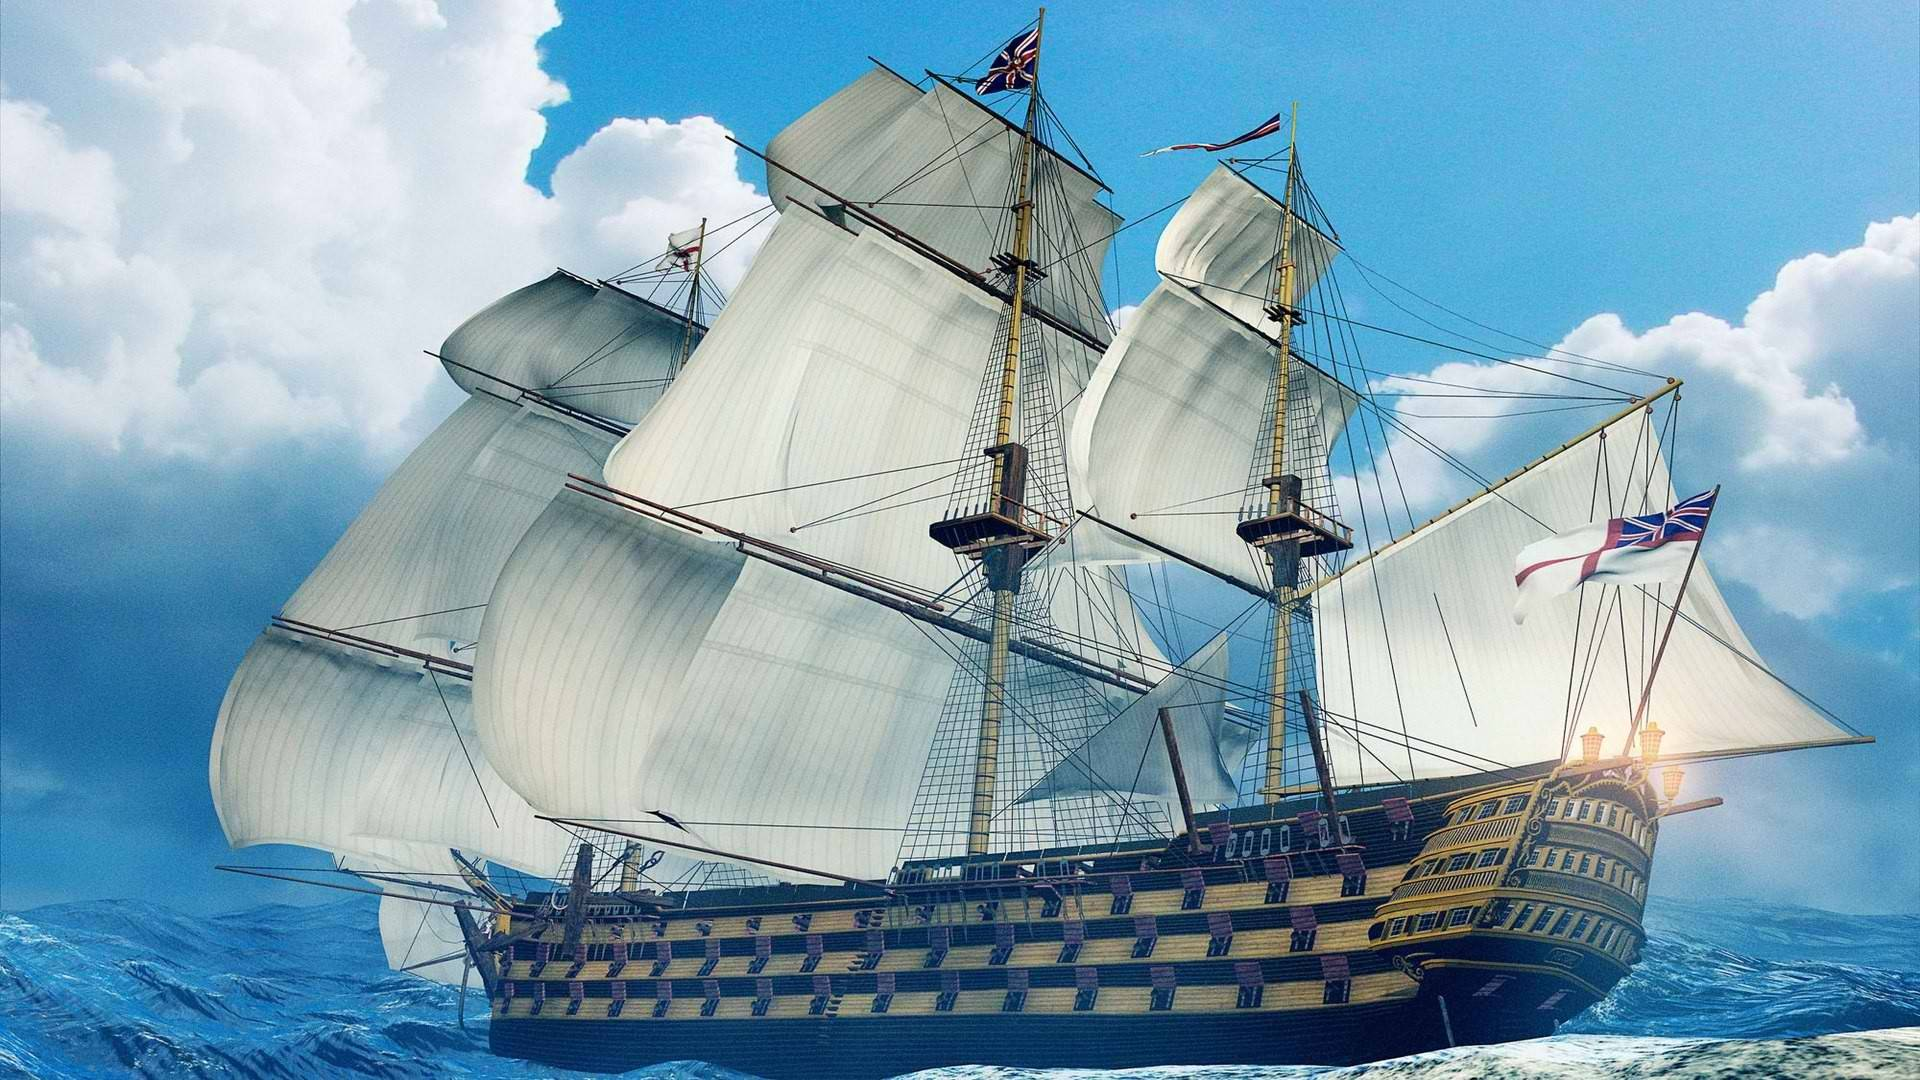 Ship Wallpaper Images in HD Available